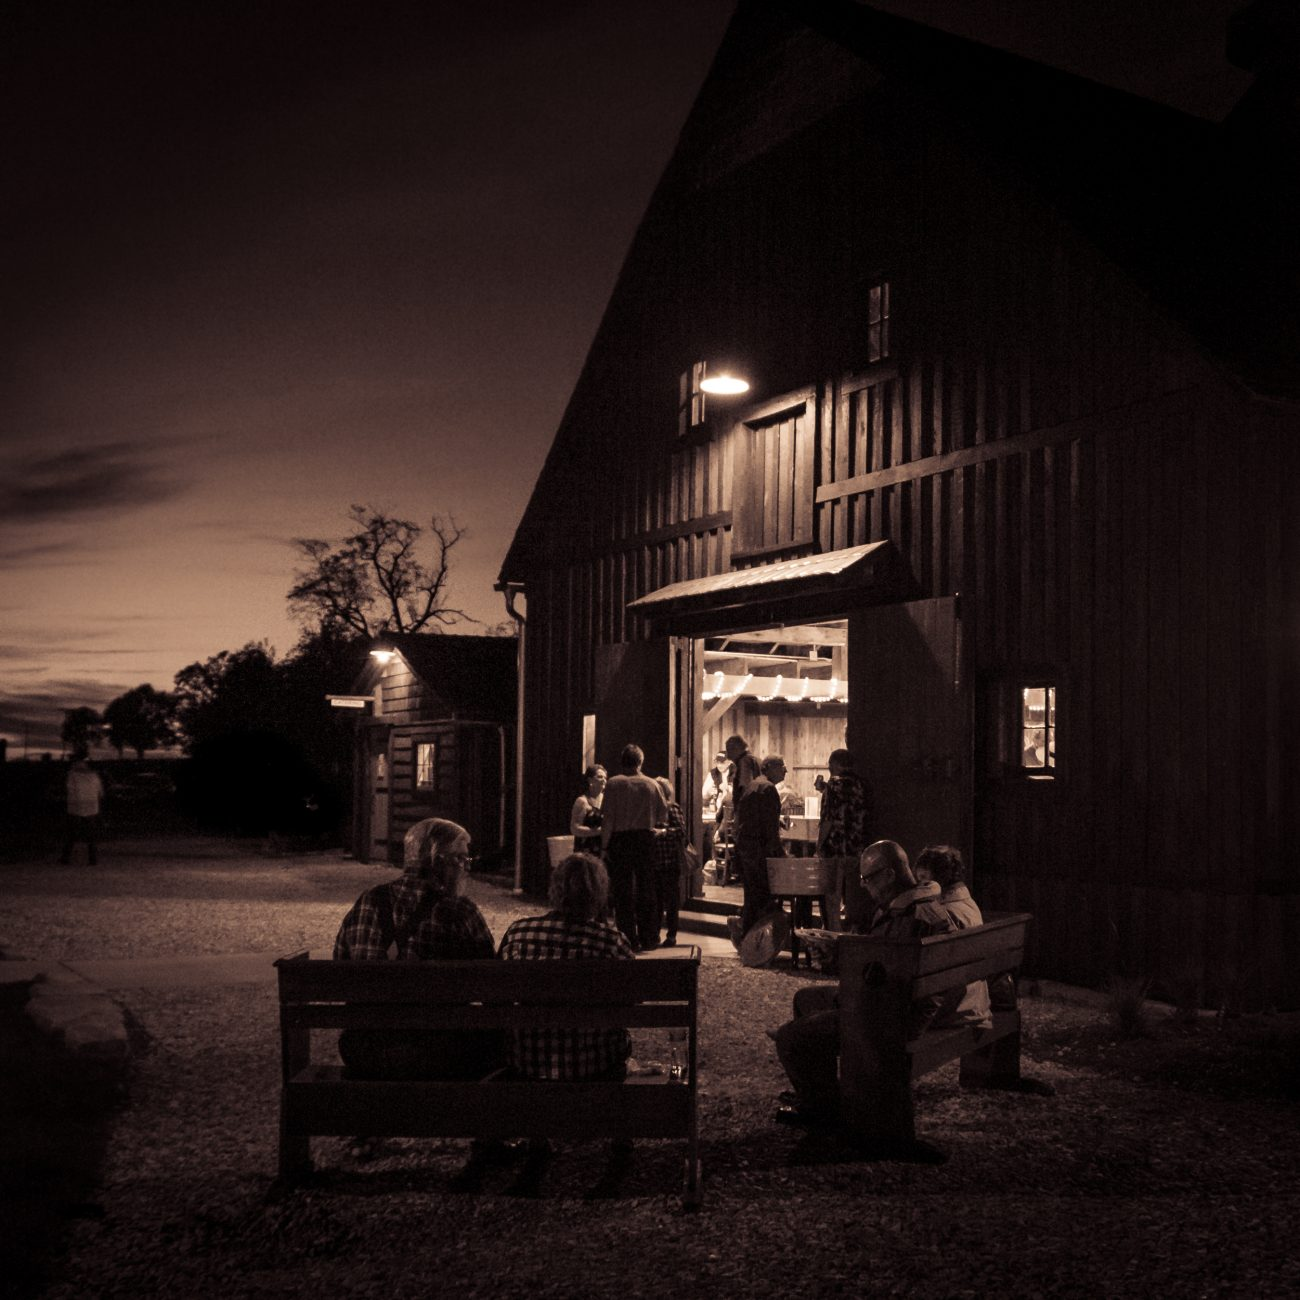 Duotoned photograph of people sitting and standing outside a barn eating and conversing in the twilight